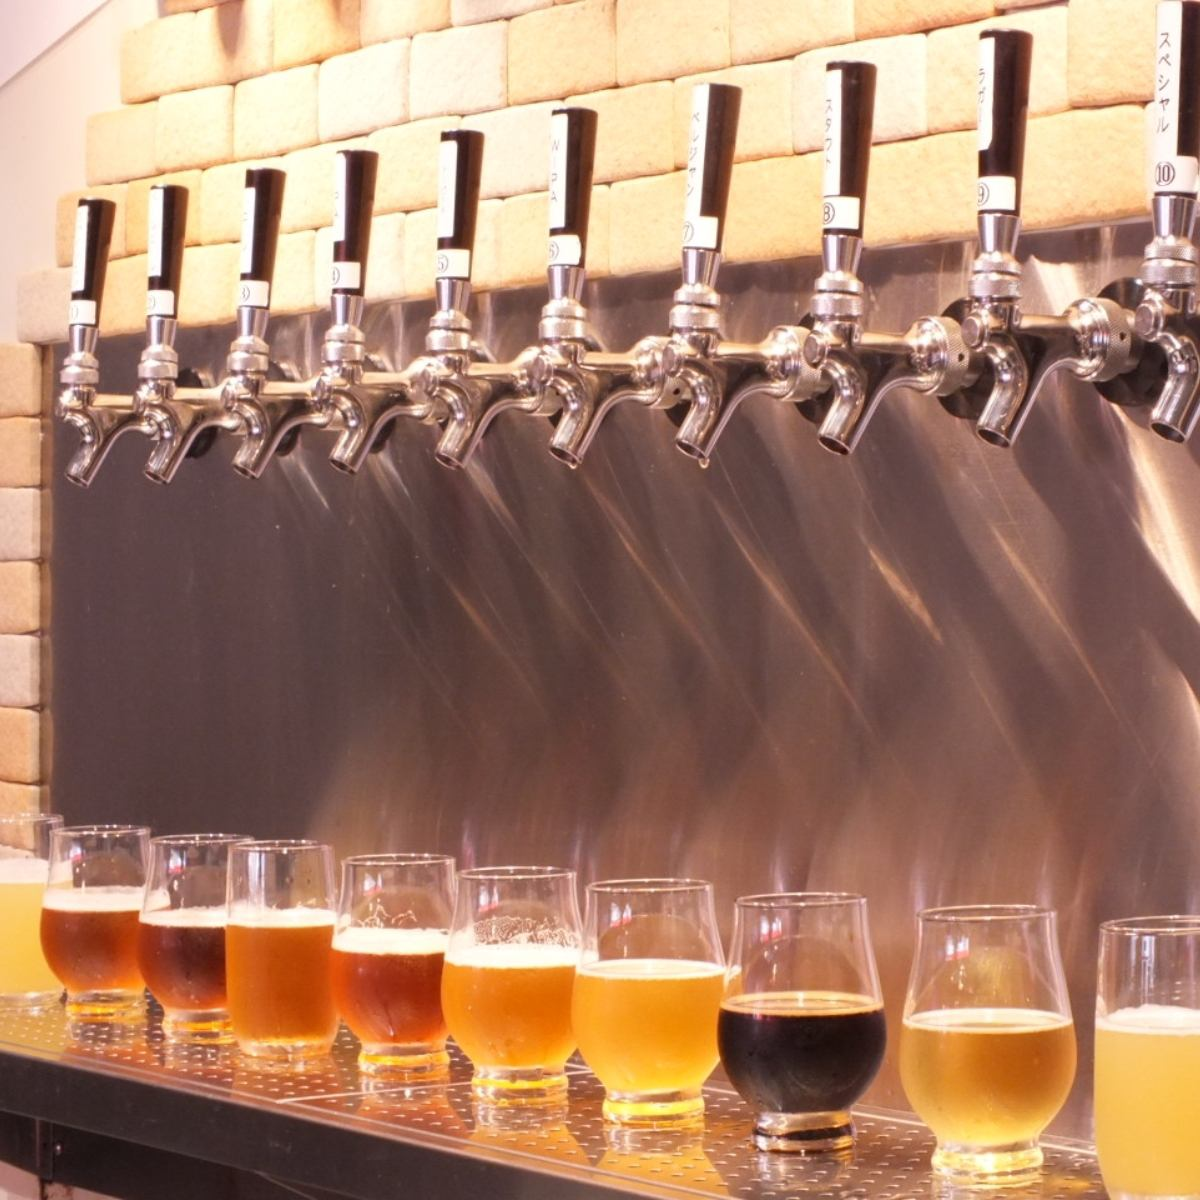 A shop where you can taste craft beer from all over shop owner's selections! This is the shop you found at last